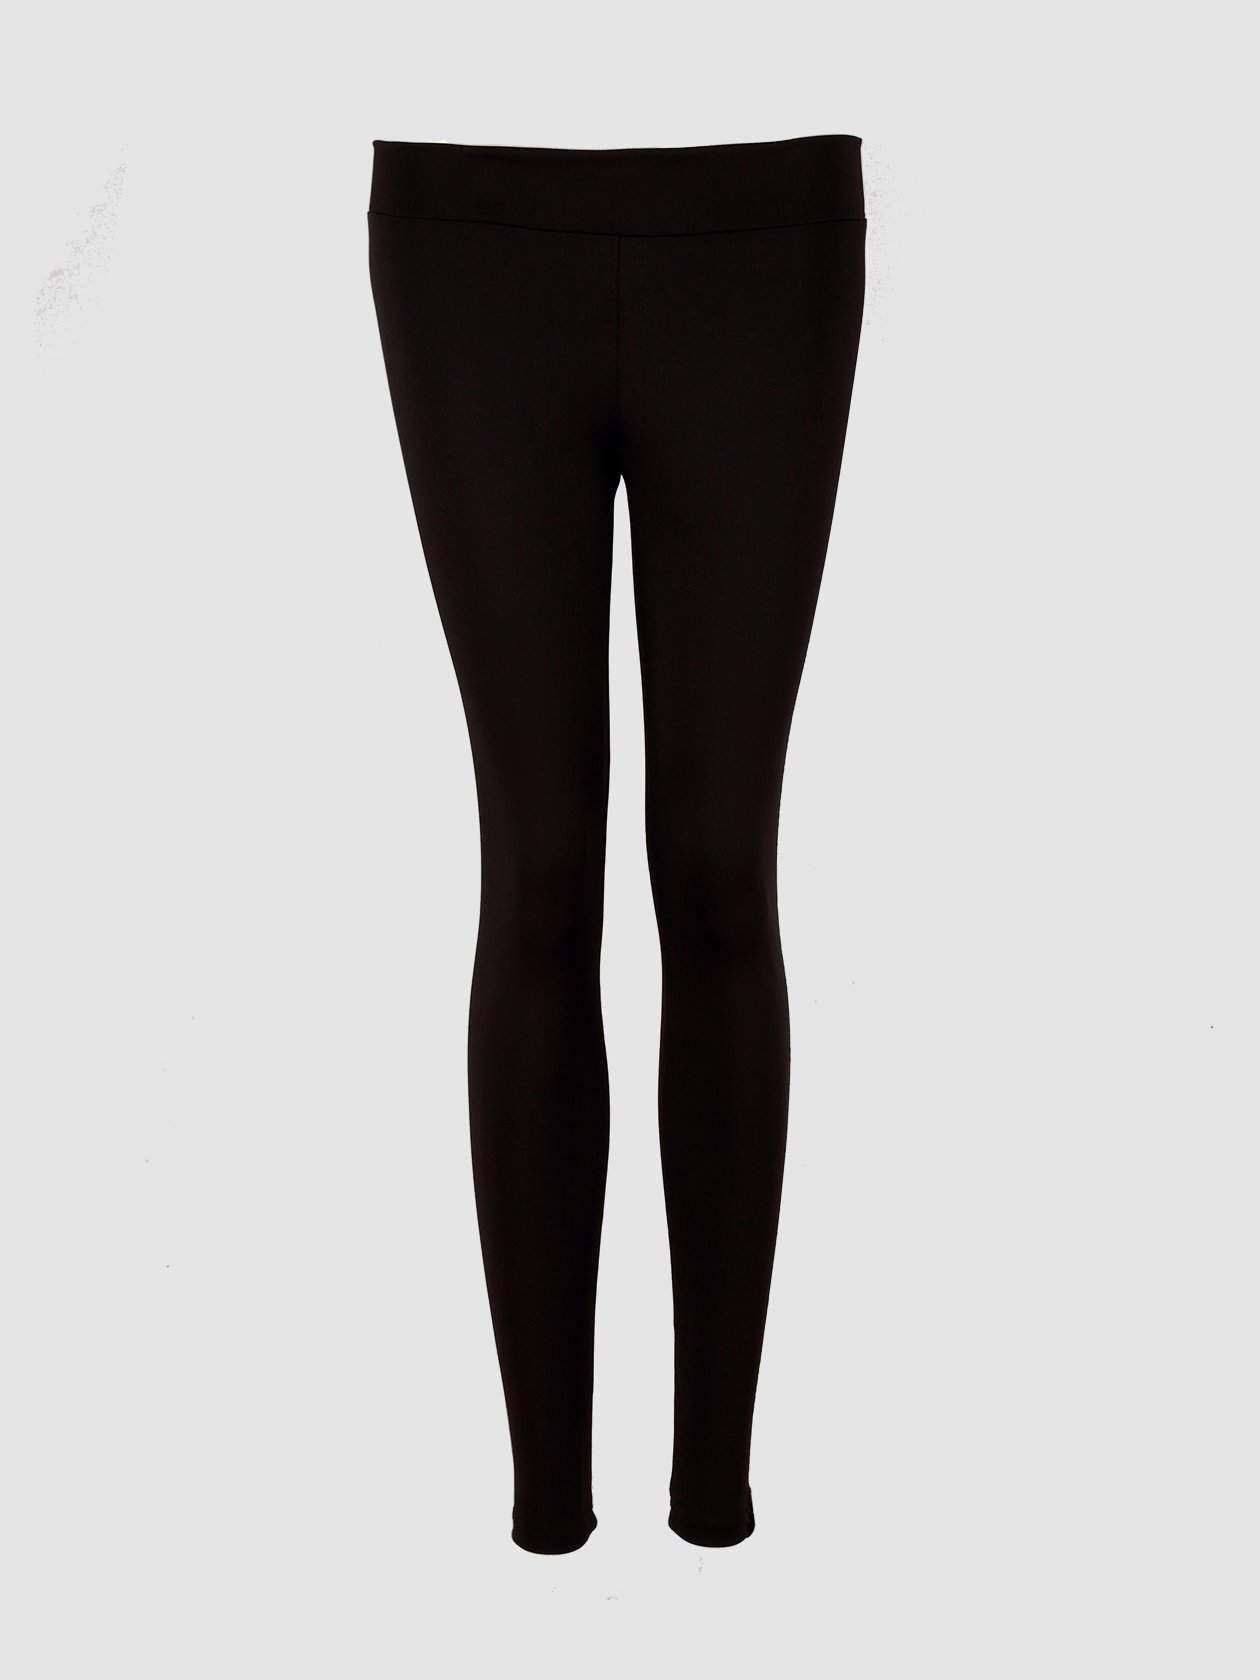 Womens leggings In BlackWomens leggings by Black Star Wear. Tight fit, polyamid - smooth strertch fabric, high-shine finish, regular waist with an elastic band. Small brands label on the left side. Avaliable in black.<br><br>size: M<br>color: Black<br>gender: female